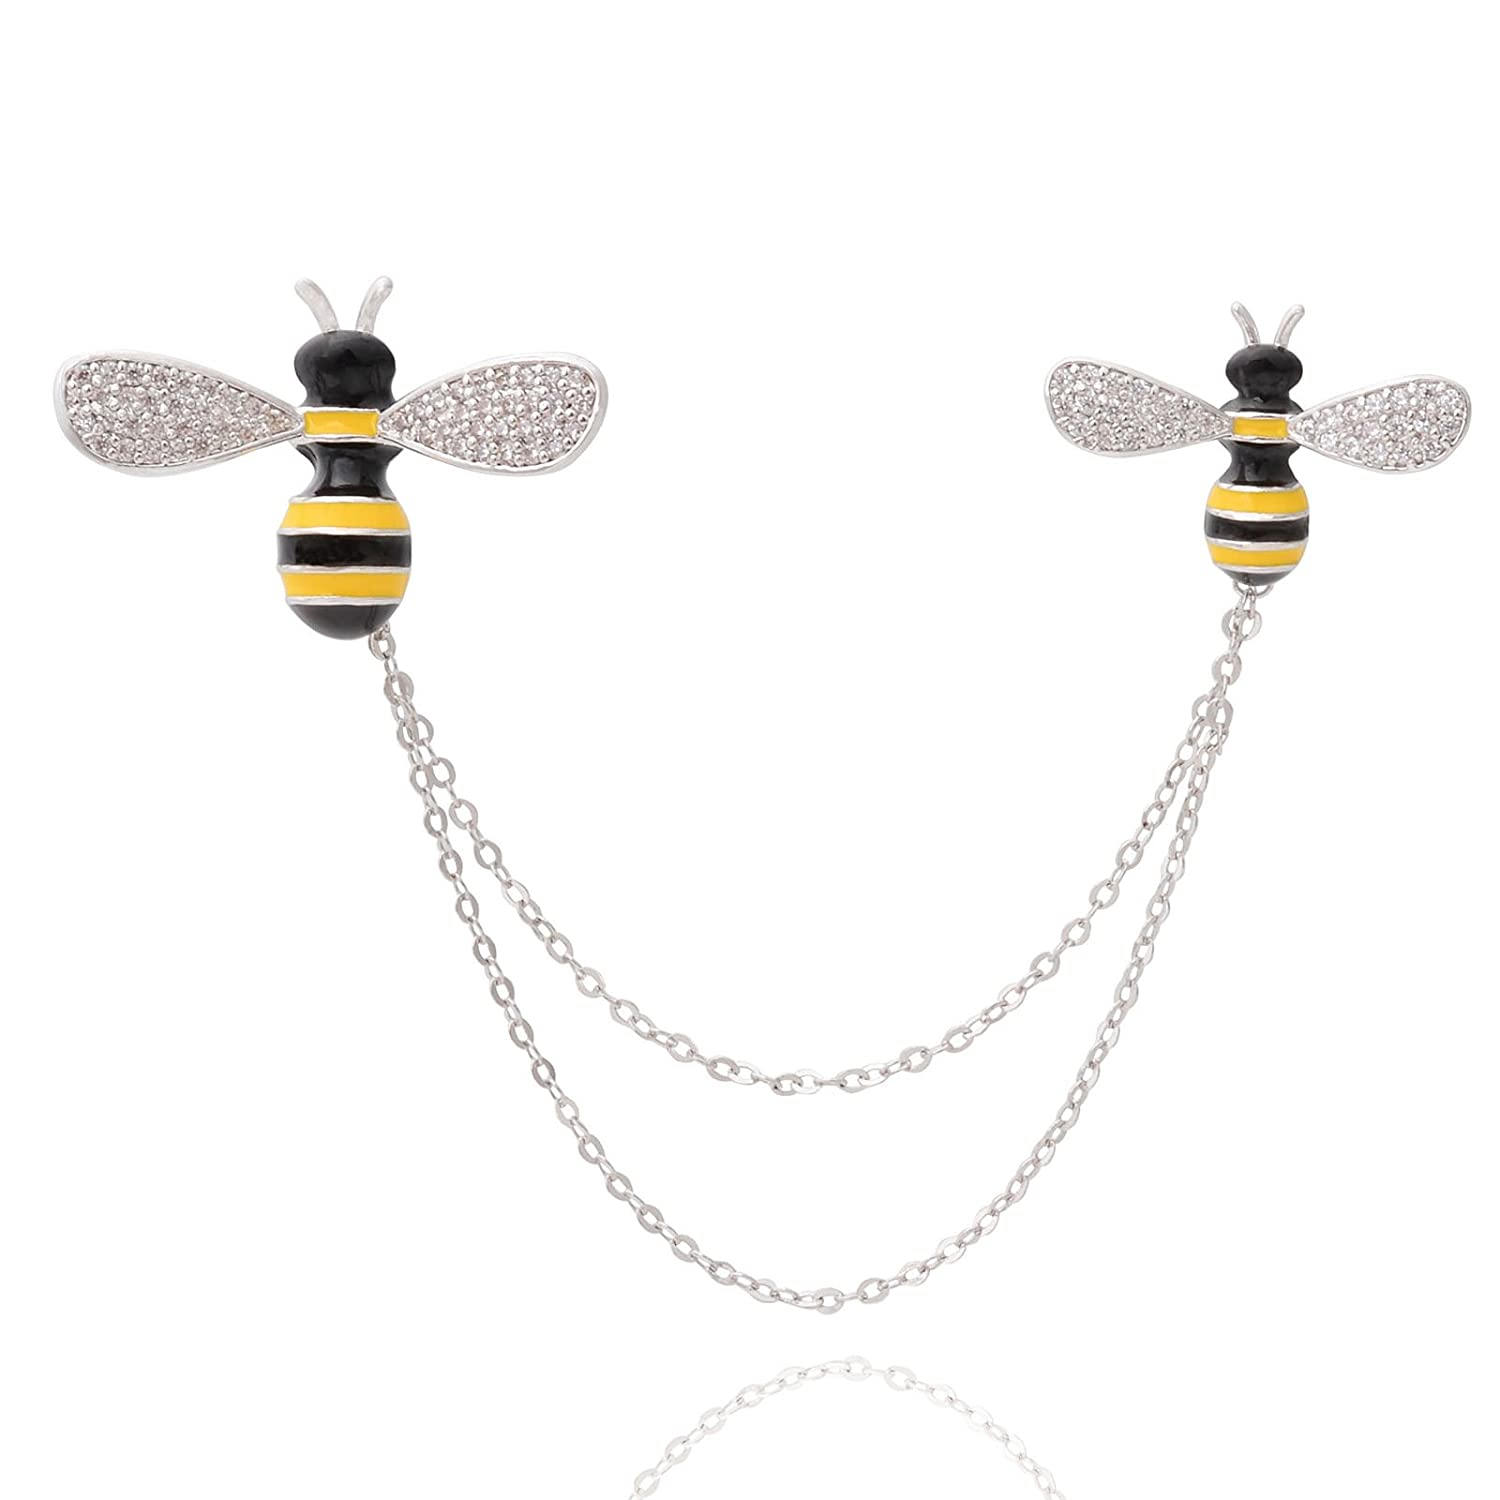 3130fbe9ee8 Amazon.com  OBONNIE Silver Tone Crystal Enamel Honey Bee Brooch Collar Pins  with Tassel Sweater Cardigan Clips Pin (Yellow-Black)  Jewelry